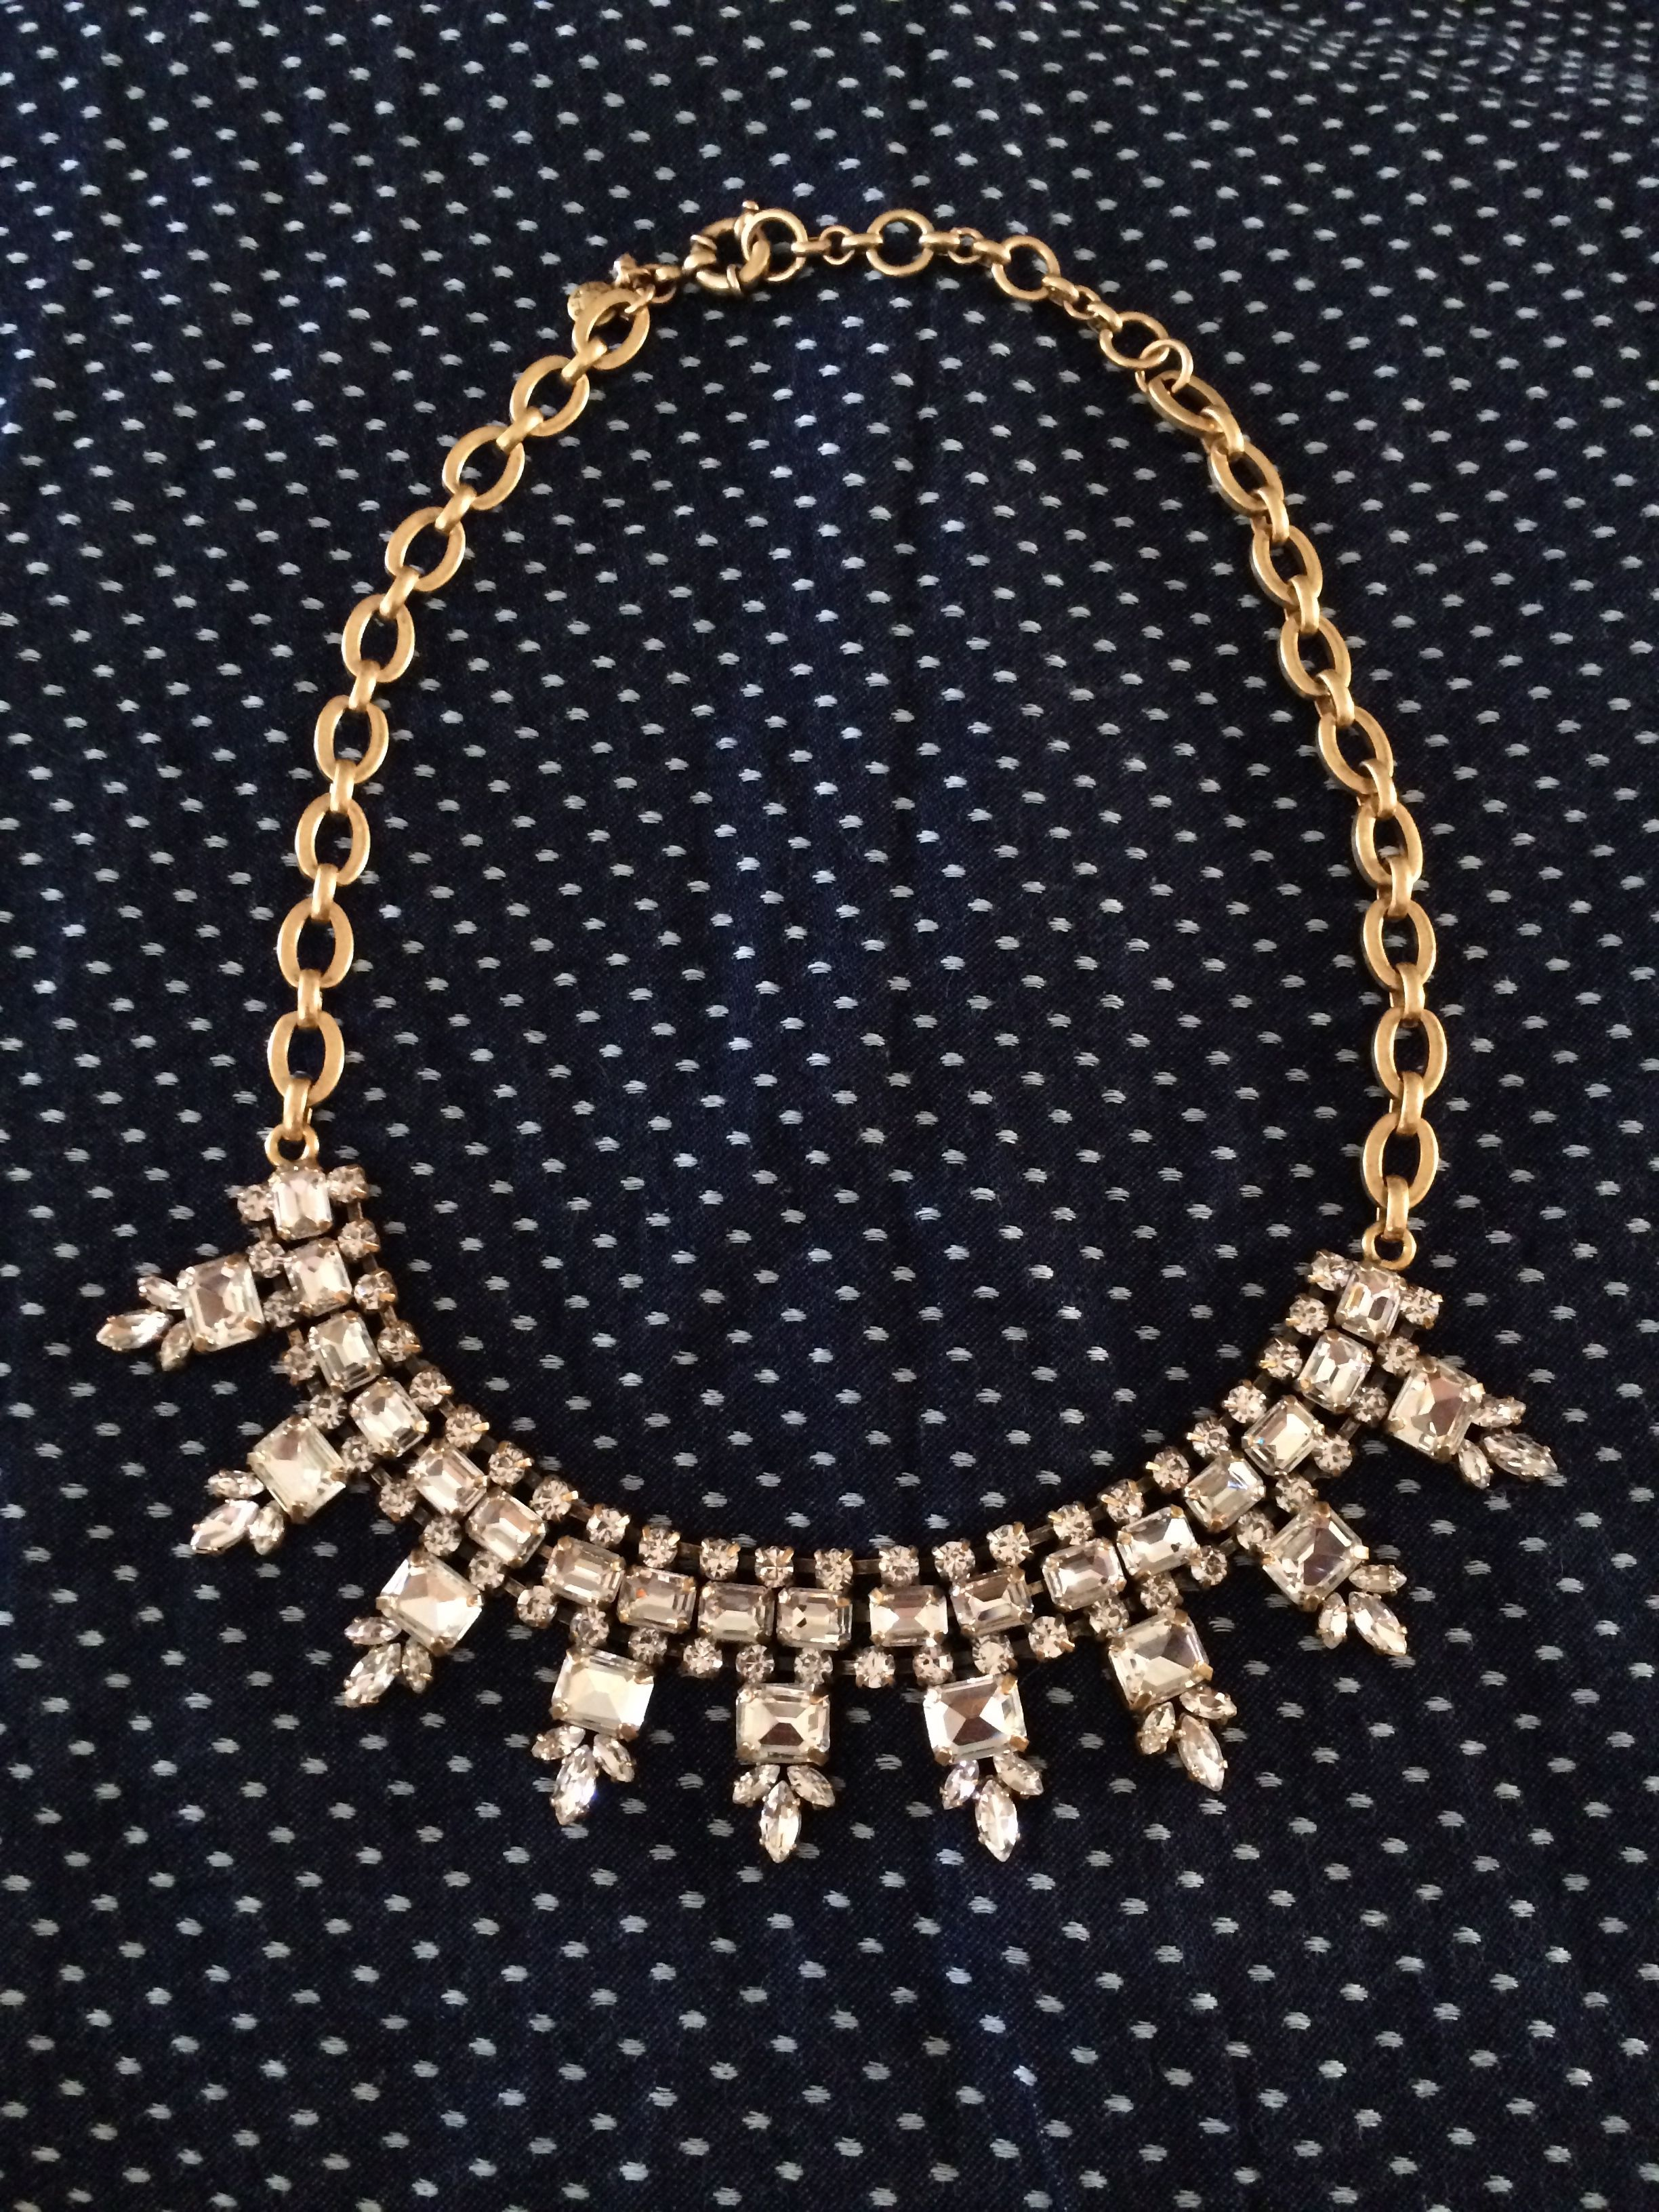 J Crew Statement Necklace. Have it & love it. So classy & timeless. Goes with everything.